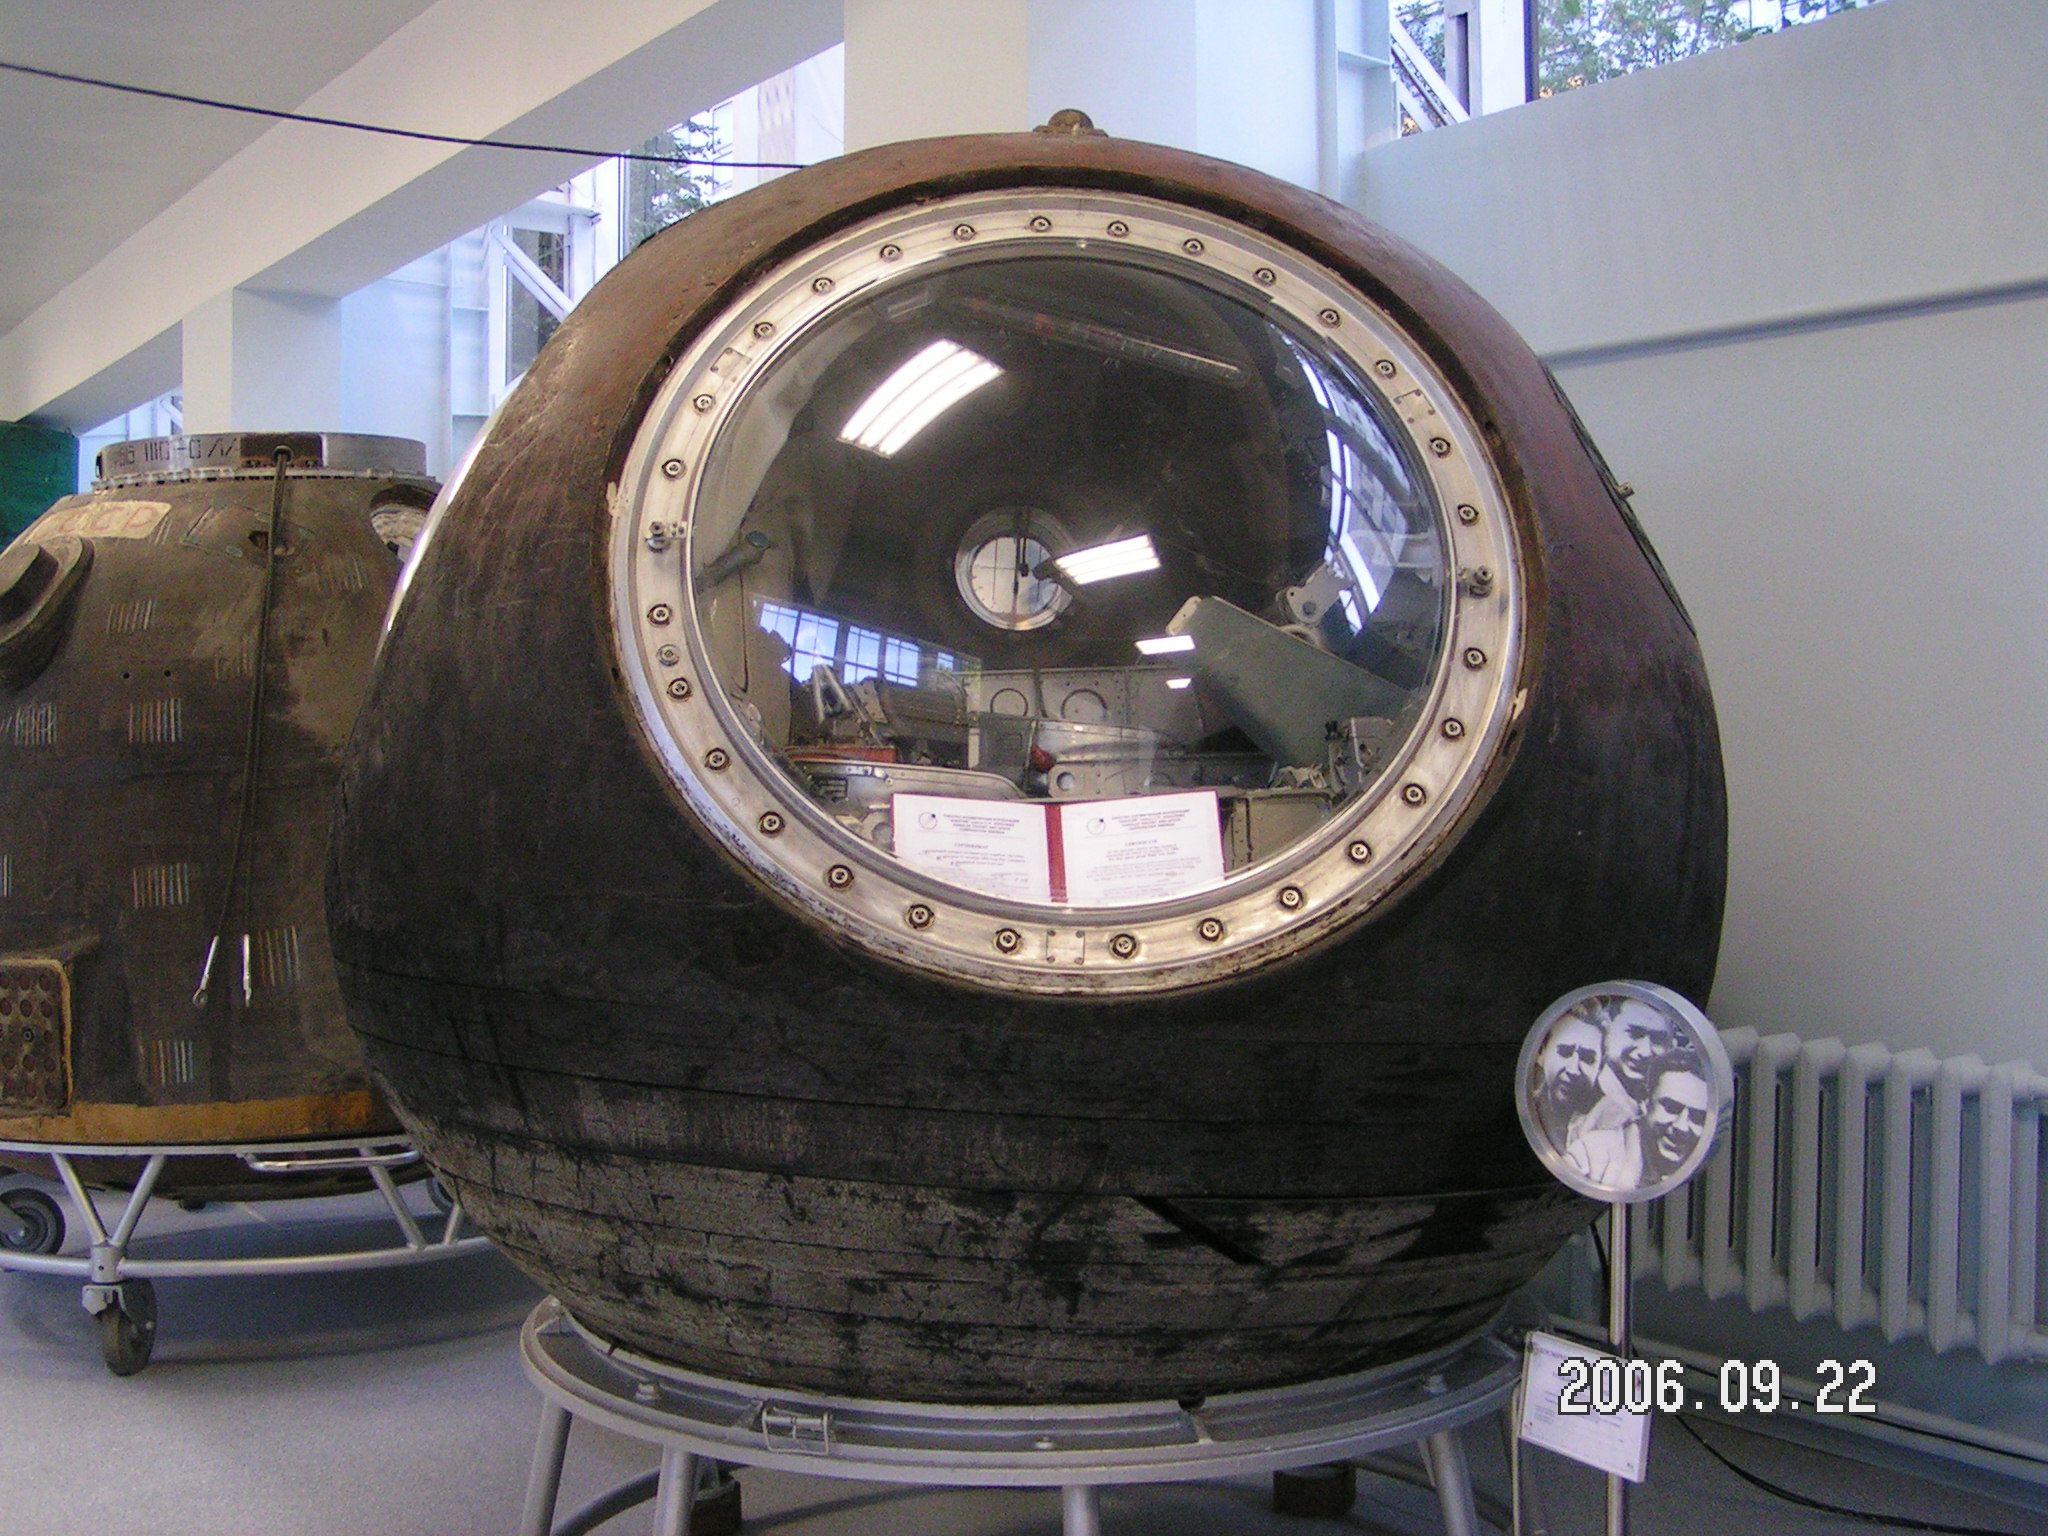 The Voskhod 1 return capsule the three men were crammed in Photo: planet4589